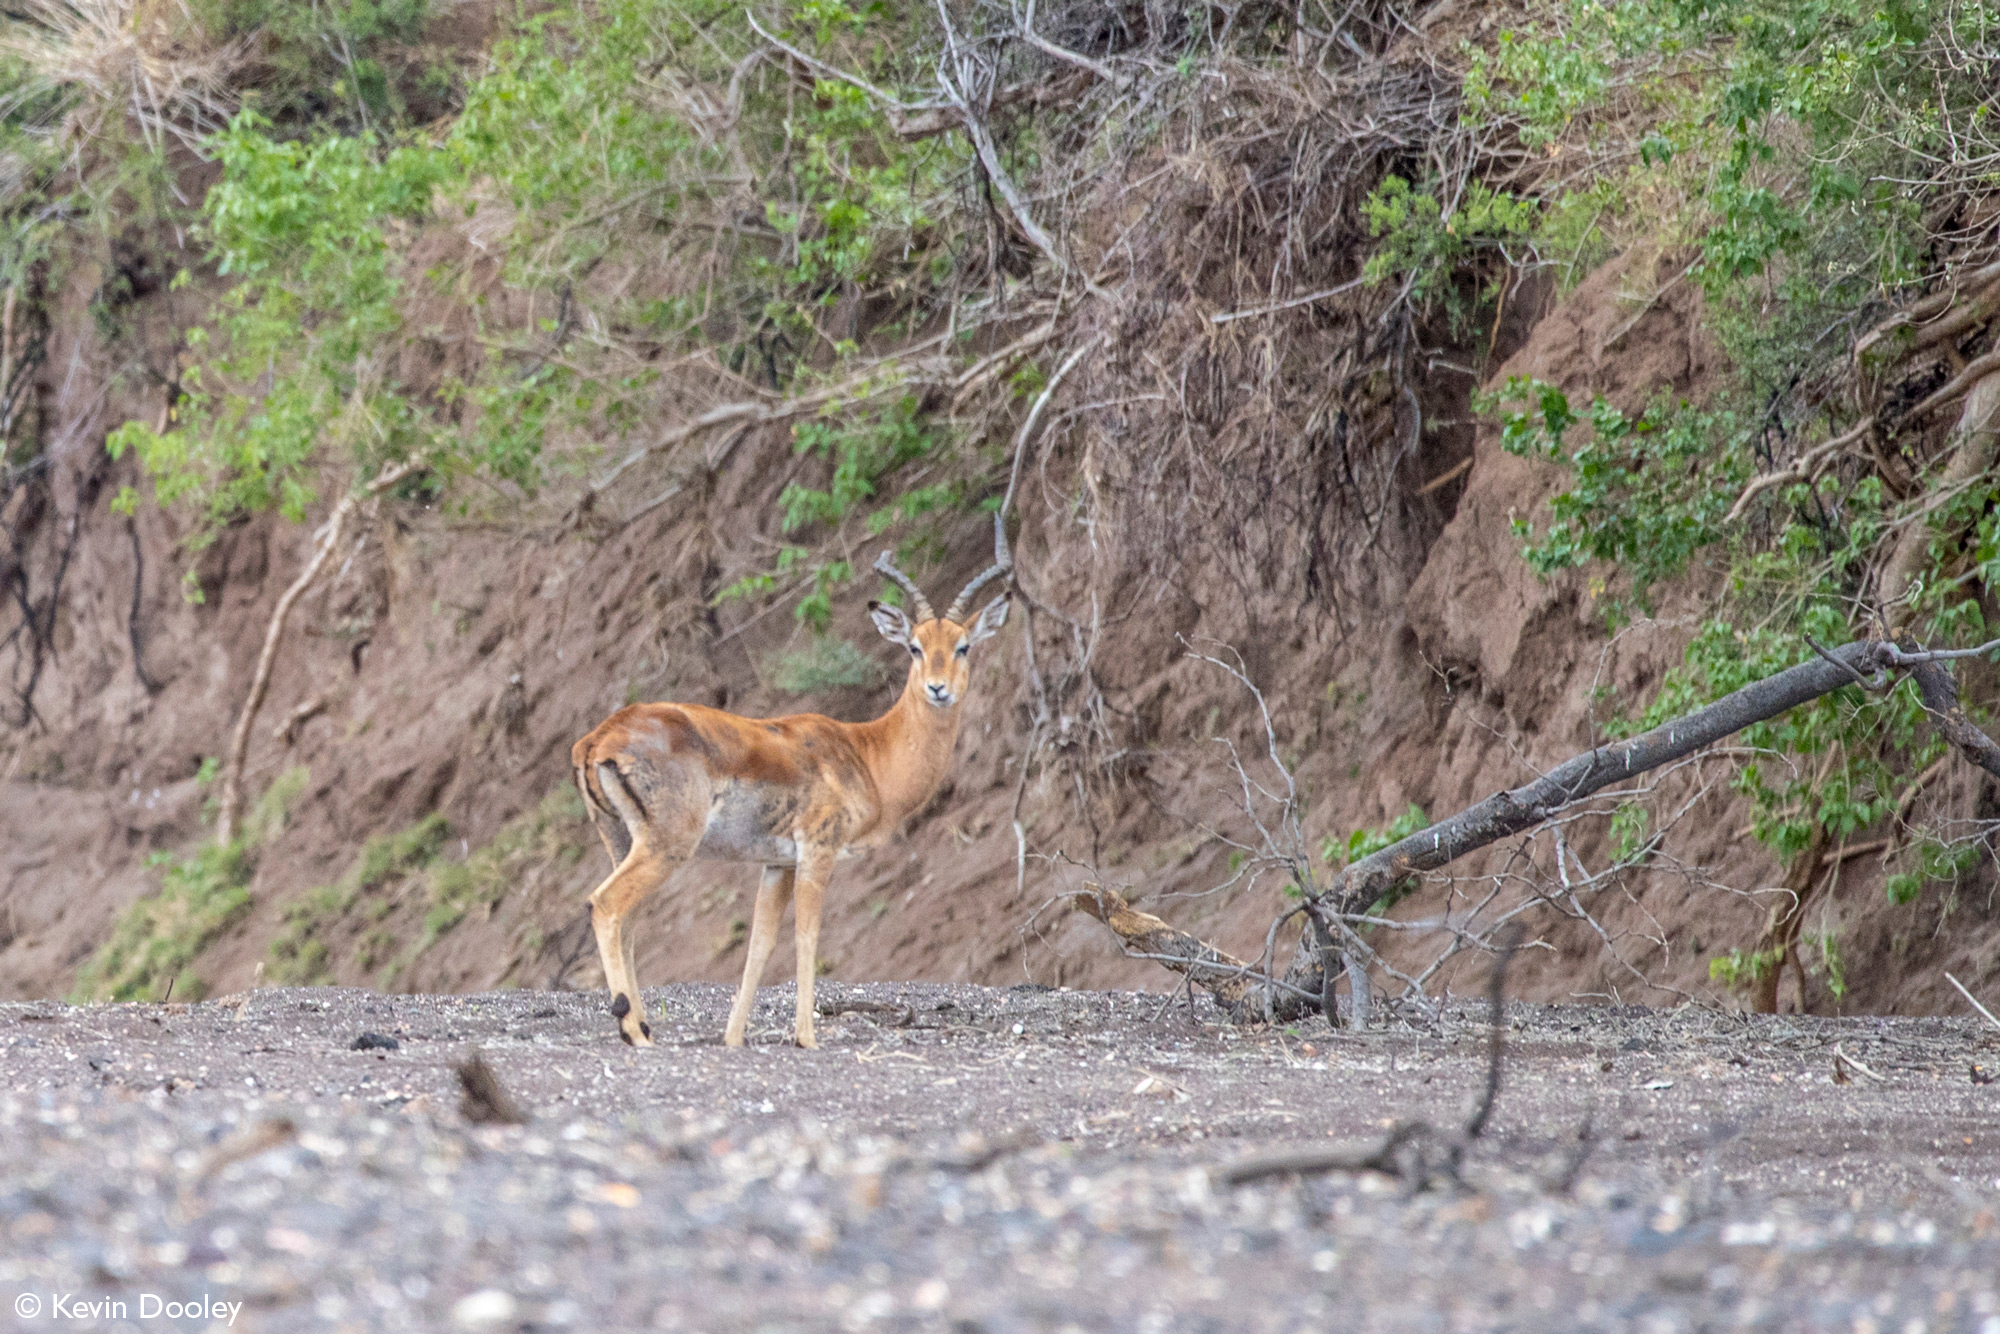 Male impala standing in dry riverbed